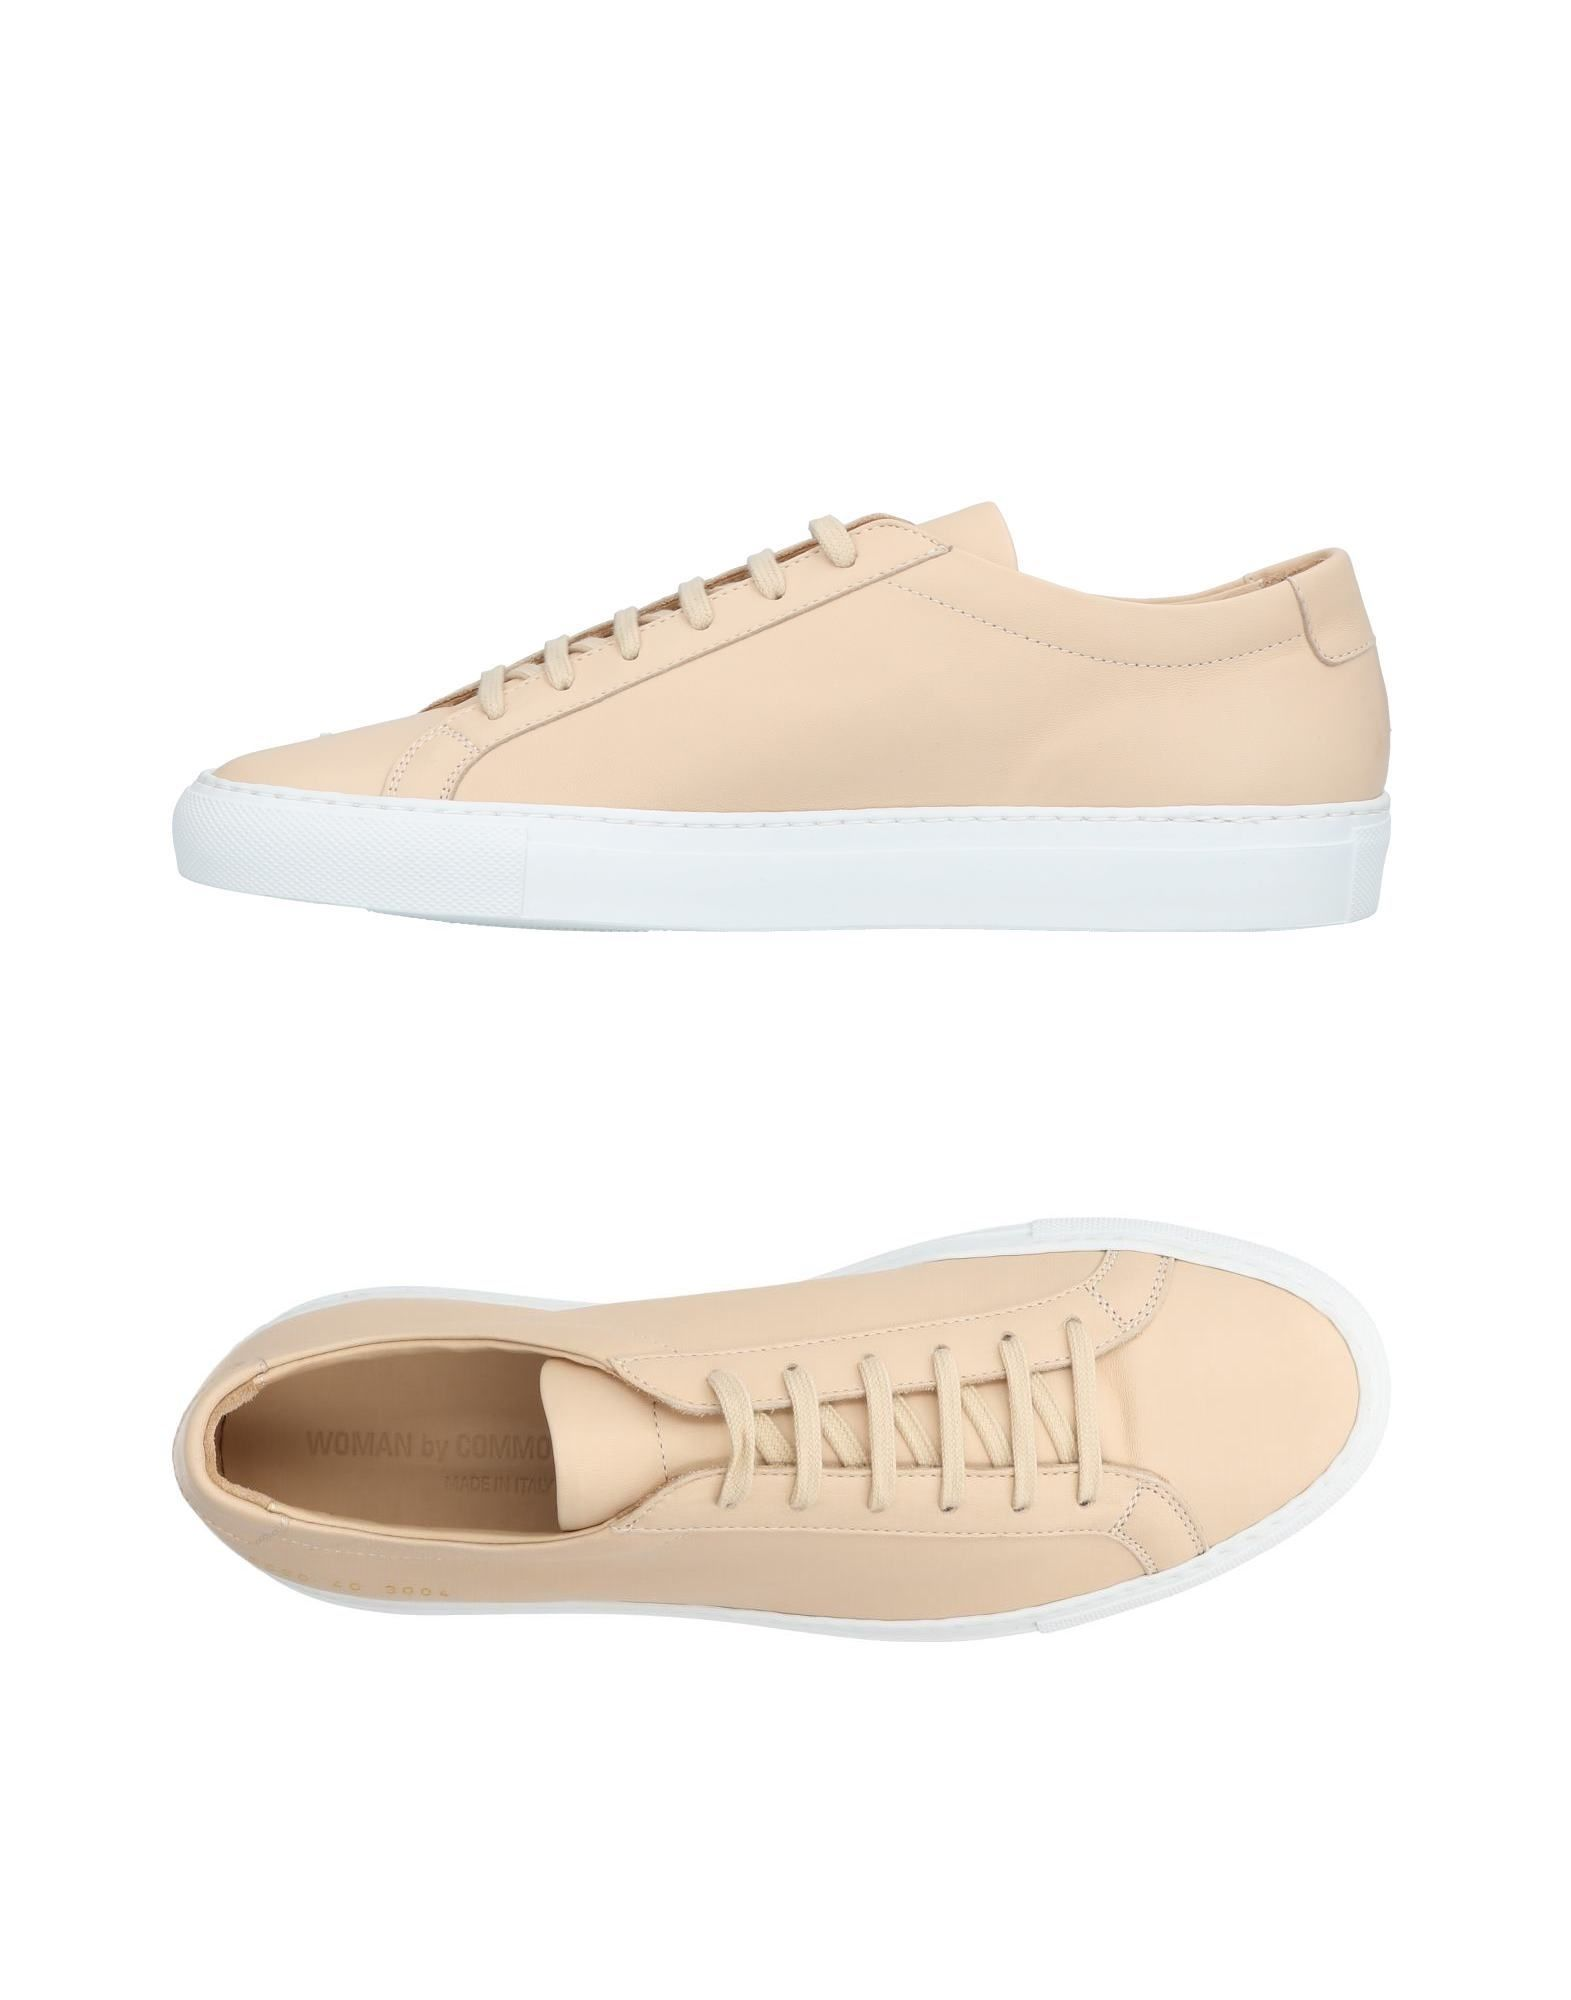 common projects shoes Free shipping and returns on women's common projects slides designer shoes at nordstromcom.